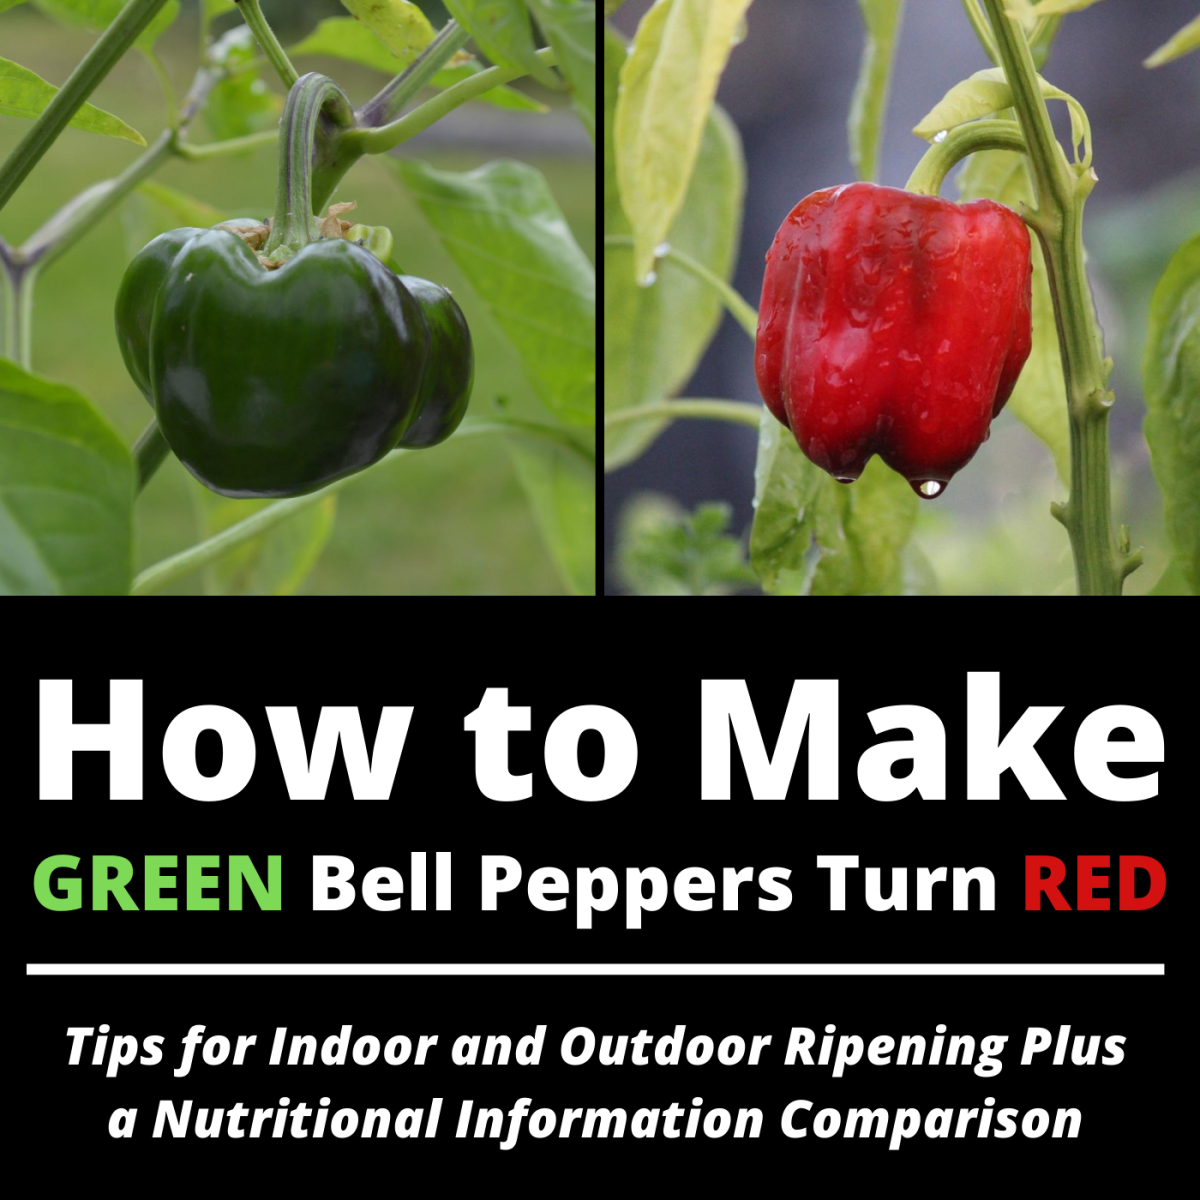 How to Get a Green Bell Pepper to Turn Red